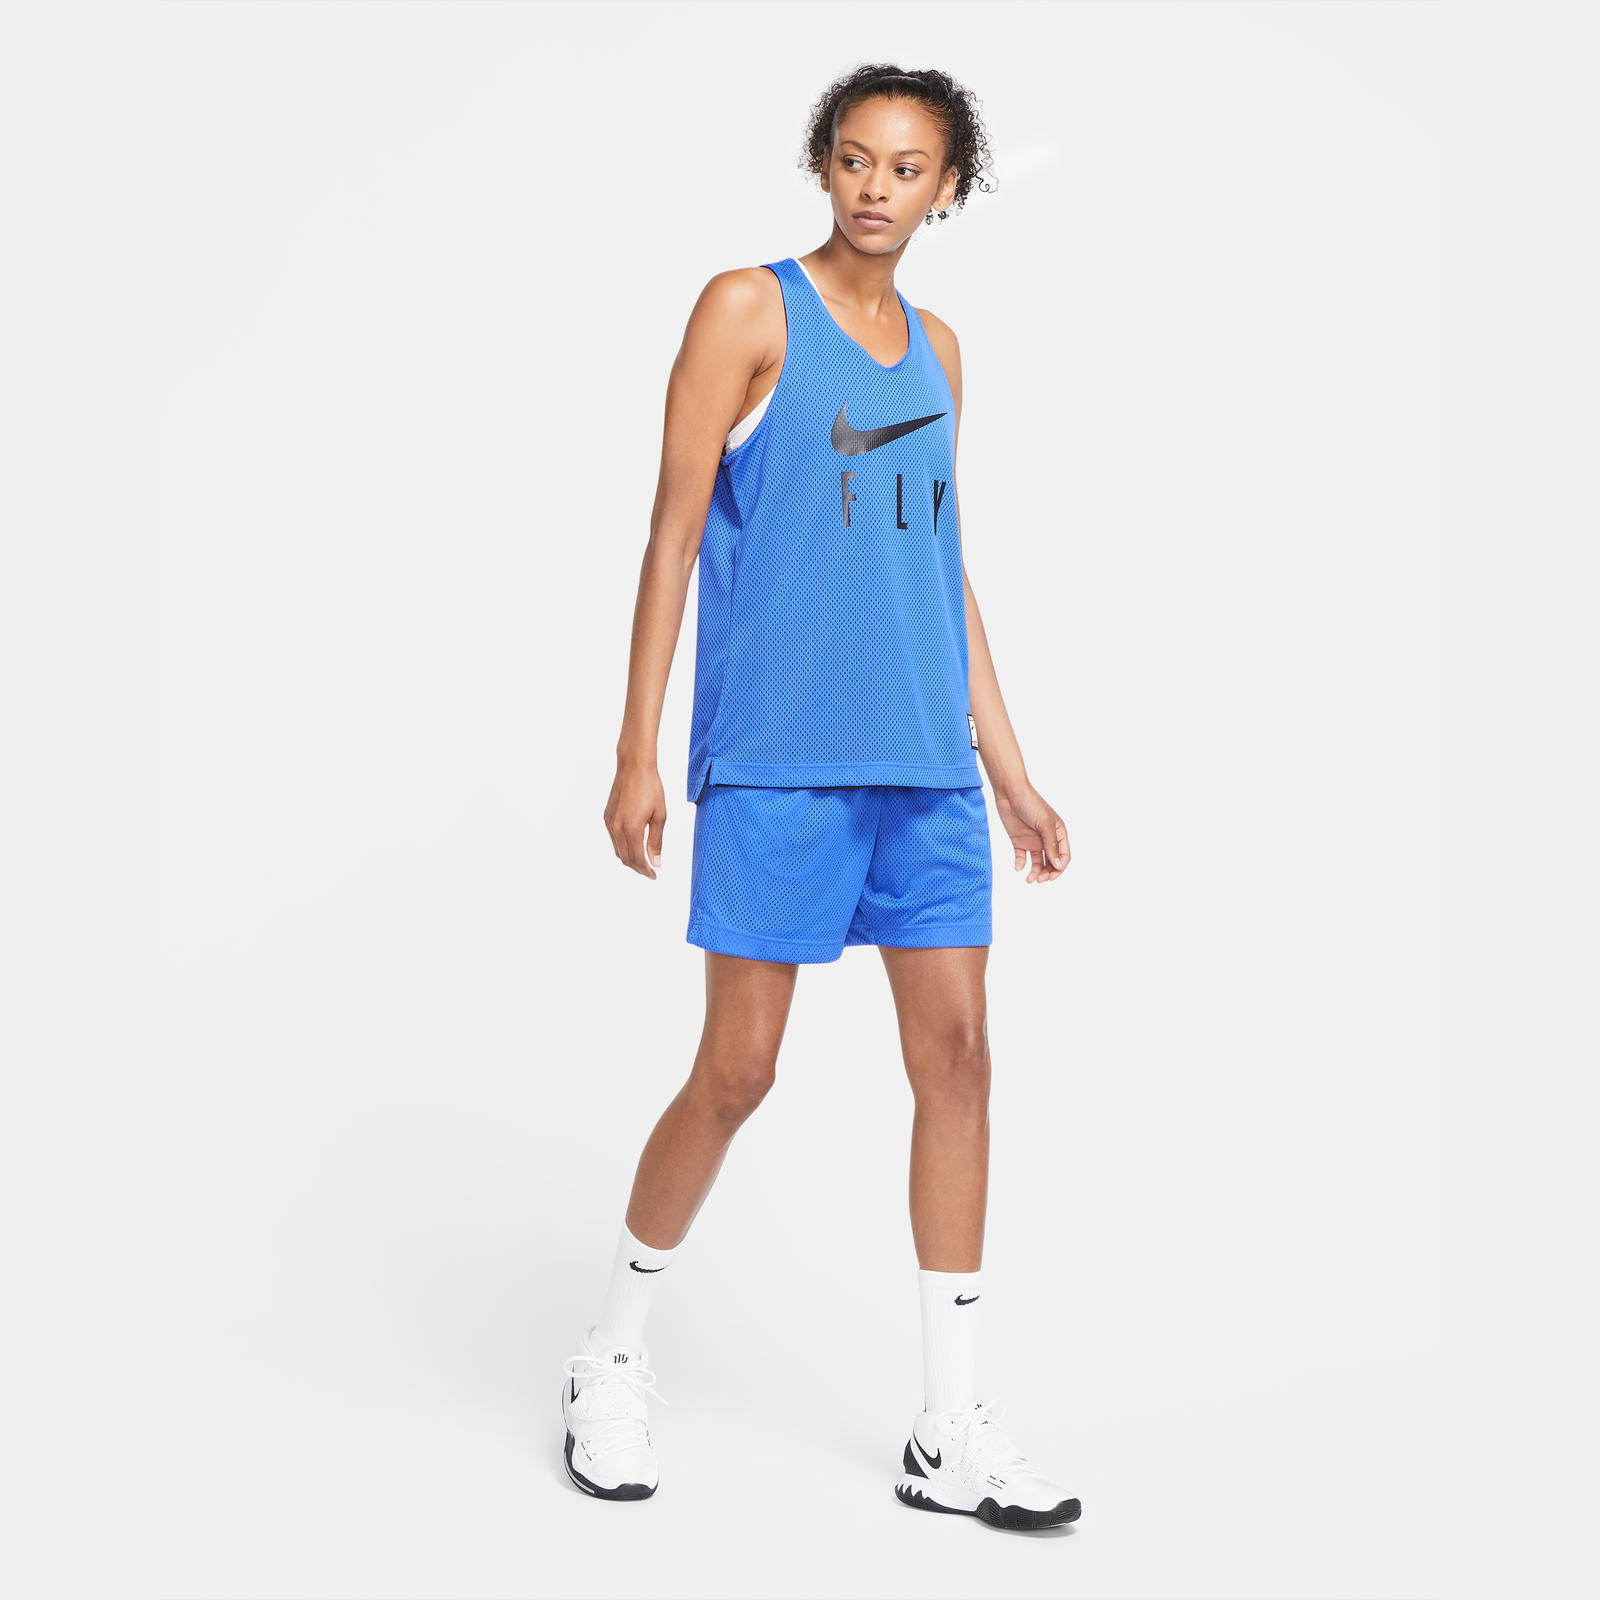 Nike Basketball Swoosh Fly Women's Apparel Official Images and Release Date 7